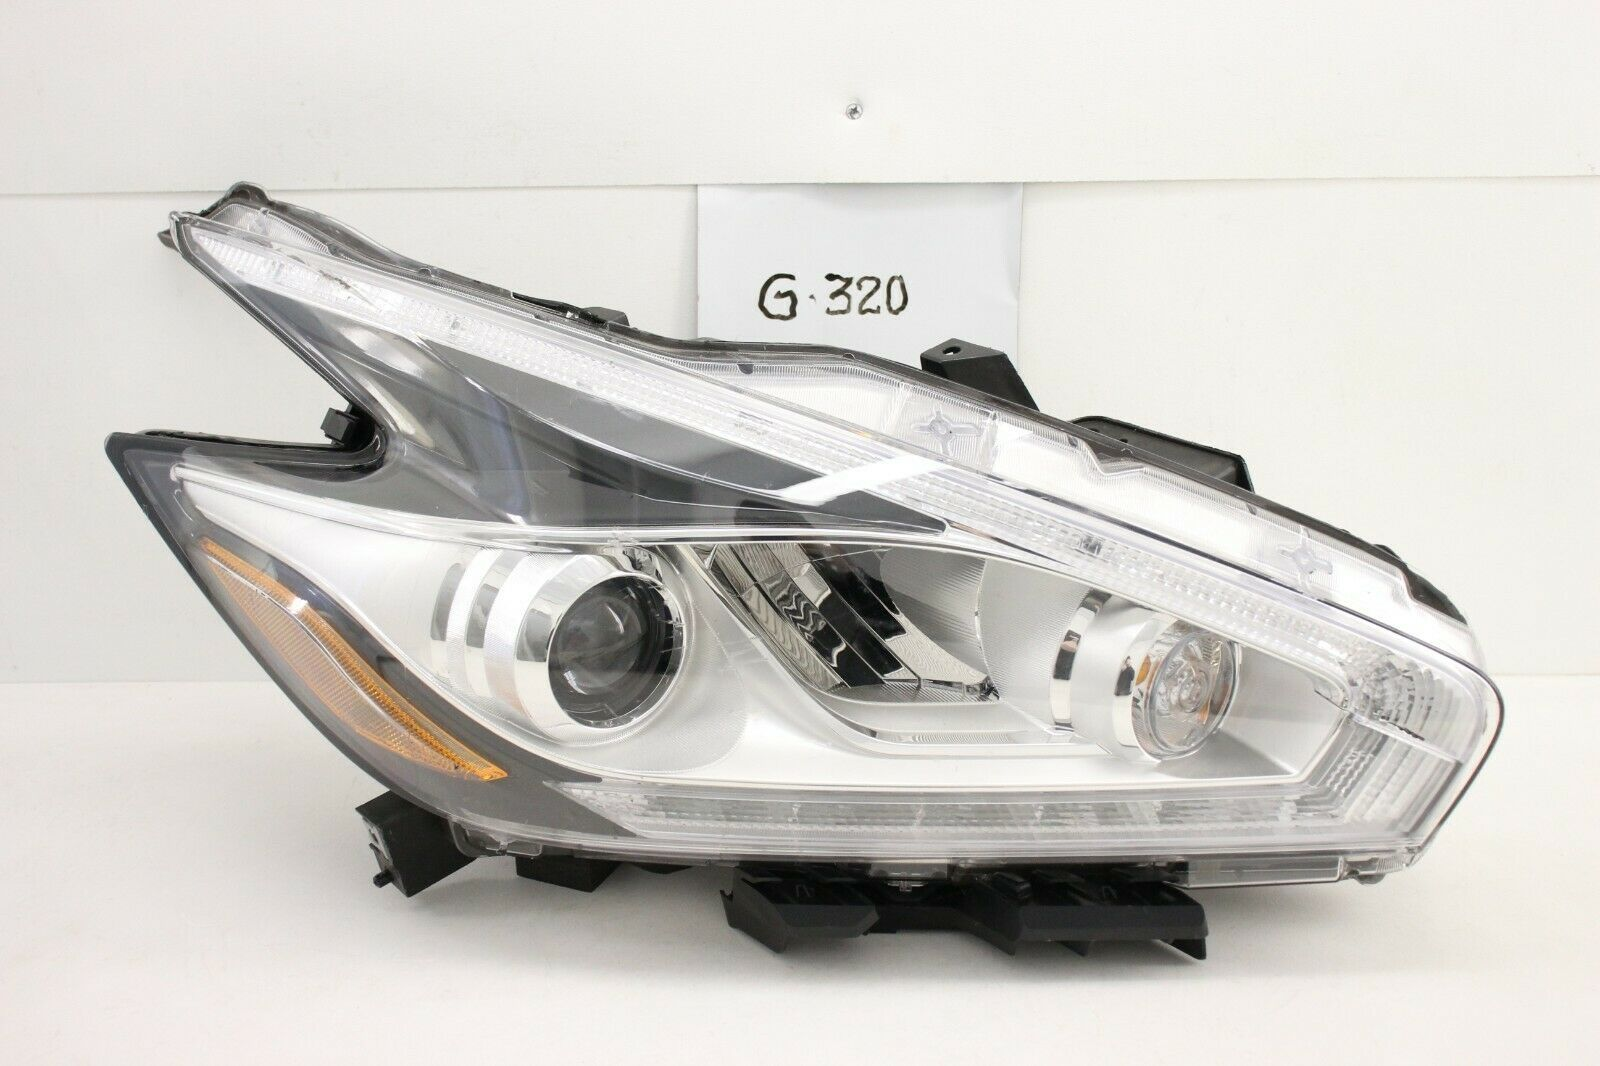 OEM HEADLIGHT HEADLAMP HEAD LAMP LIGHT LED 15-18 NISSAN MURANO HID RH chip mount - $297.00